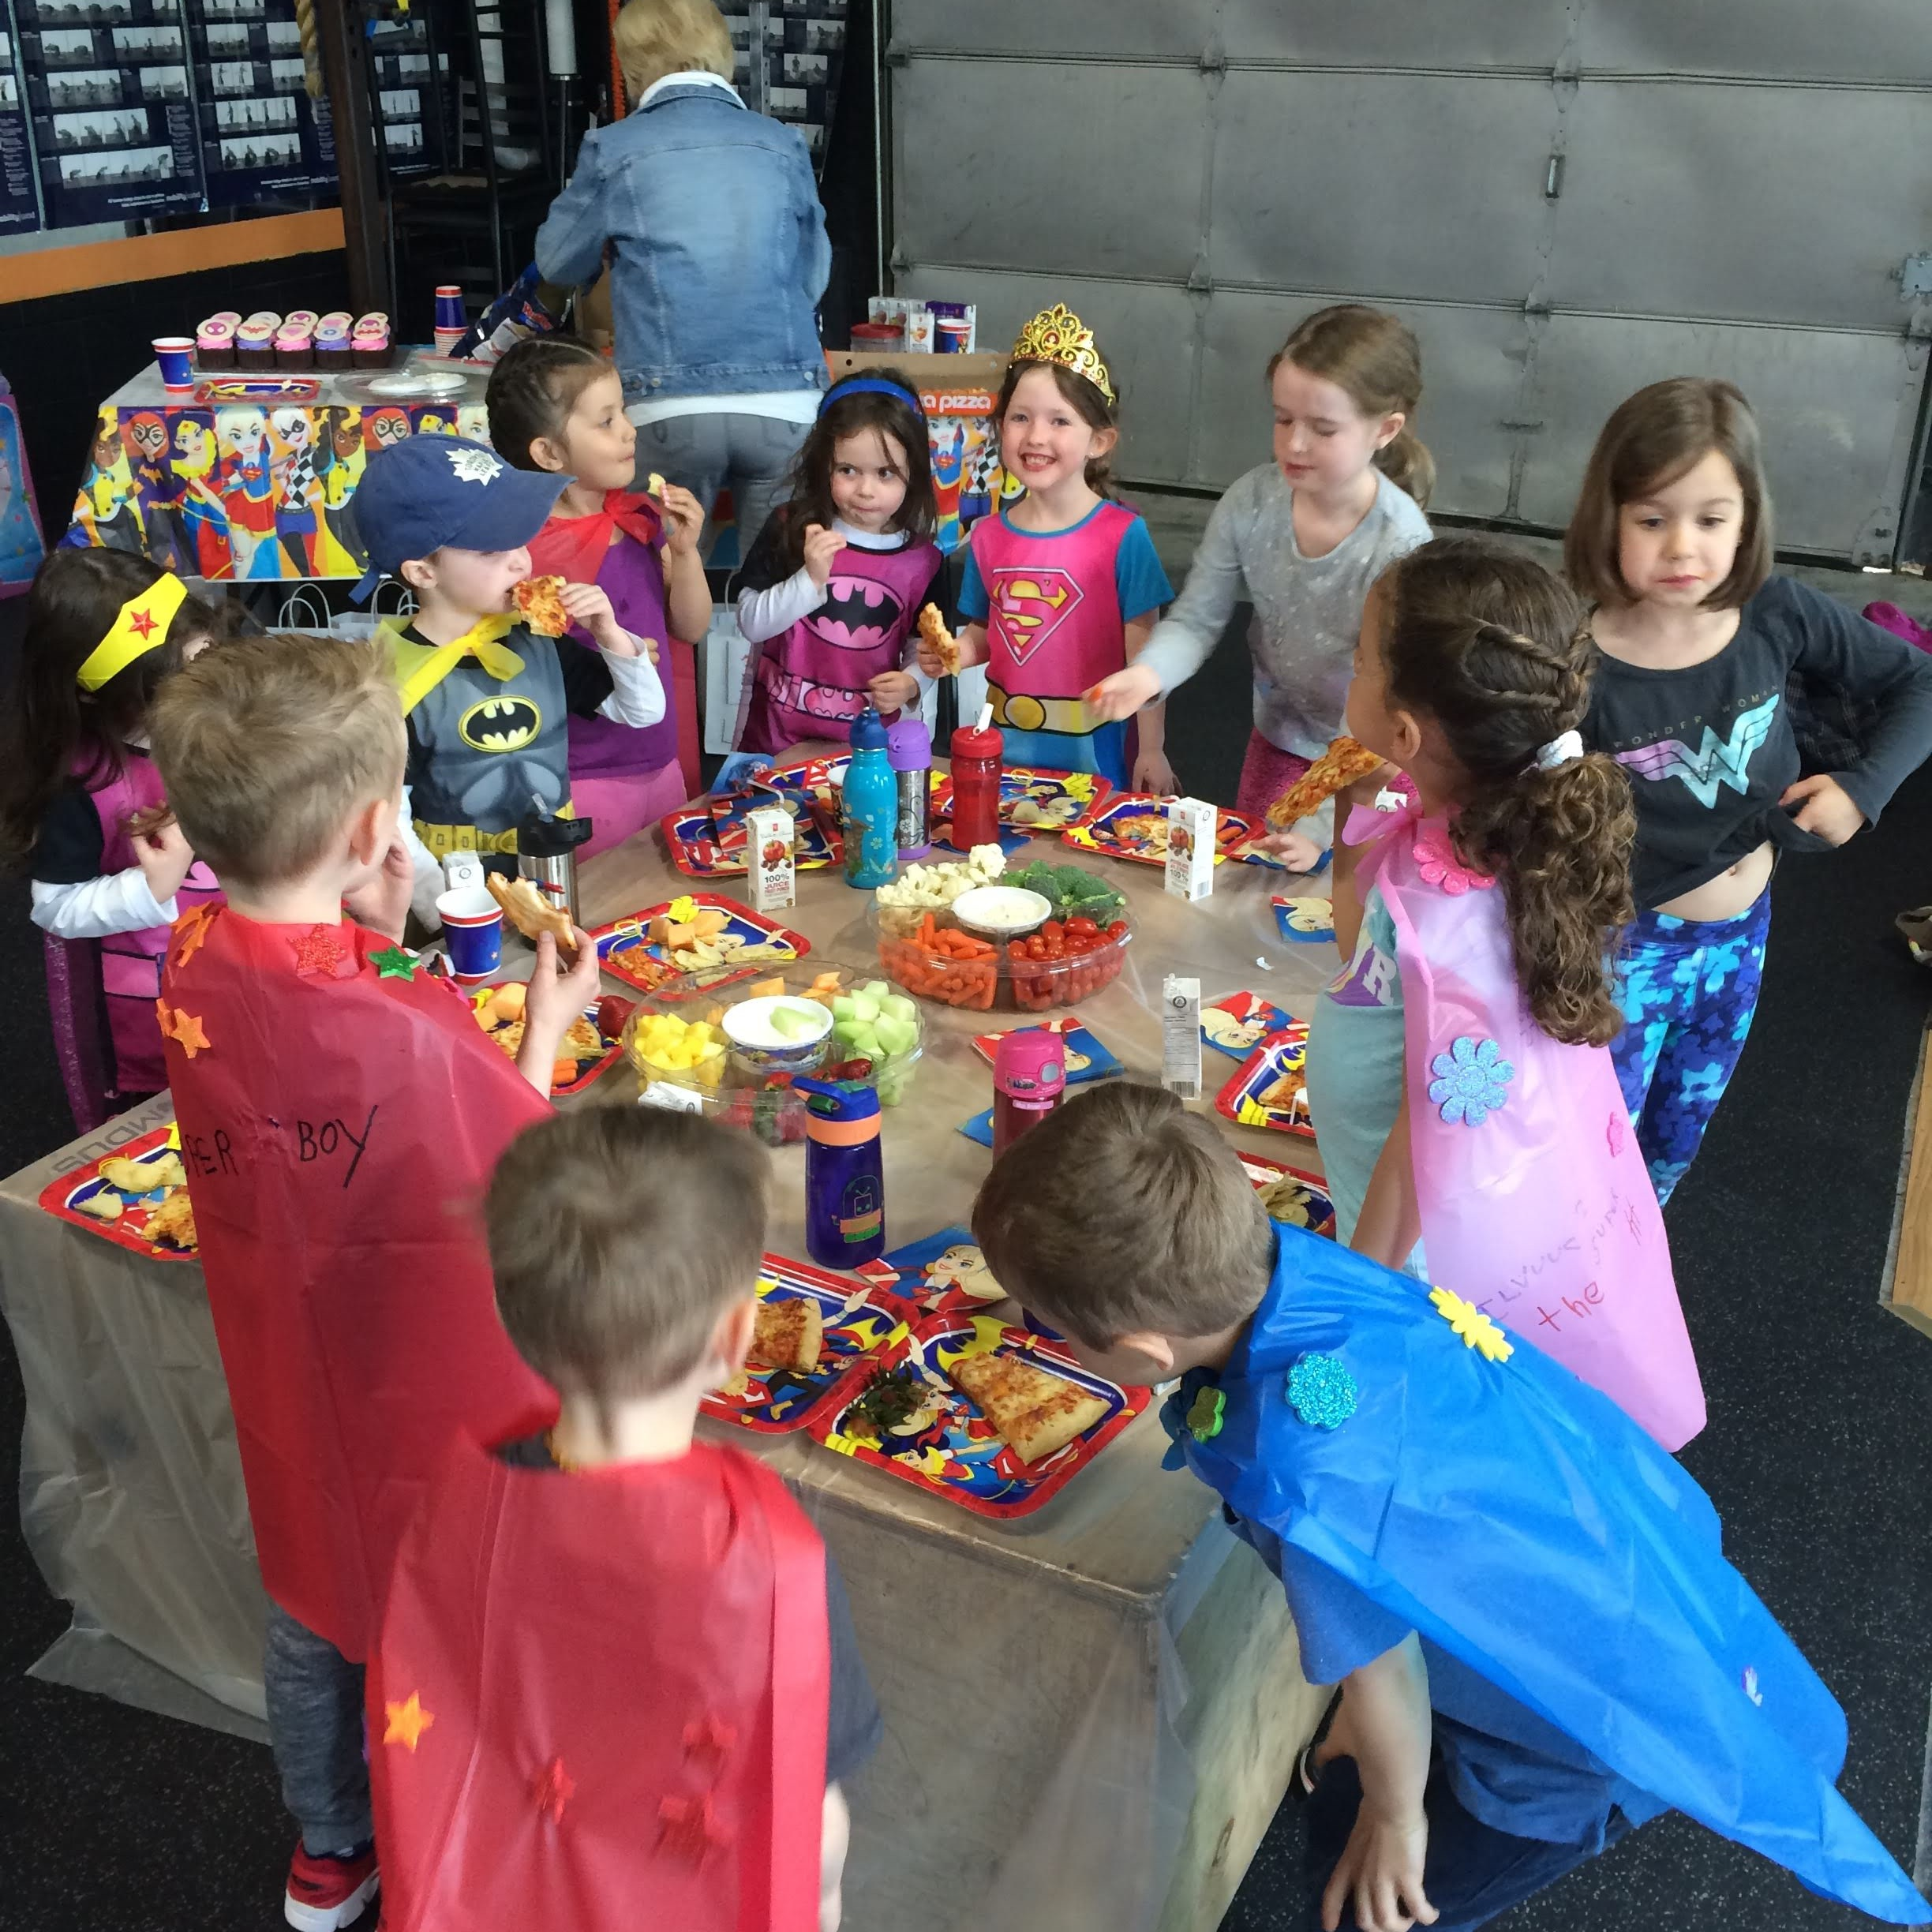 KIDS BIRTHDAY PARTIES - This is a stress-free way to celebrate your little ones birthday. Parties consist of 60 min instructor led activity including games, skill work and a workout designed with the Birthday child in mind. It also includes 60 minutes of facility use. All workouts are age appropriate and can be scaled to any individual's needs, no previous experience is required.1 coupon for a complimentary CF Kids class will be supplied for each guest and can be added to loot bags.To reserve your party please email admin@crossfitbarrie.com